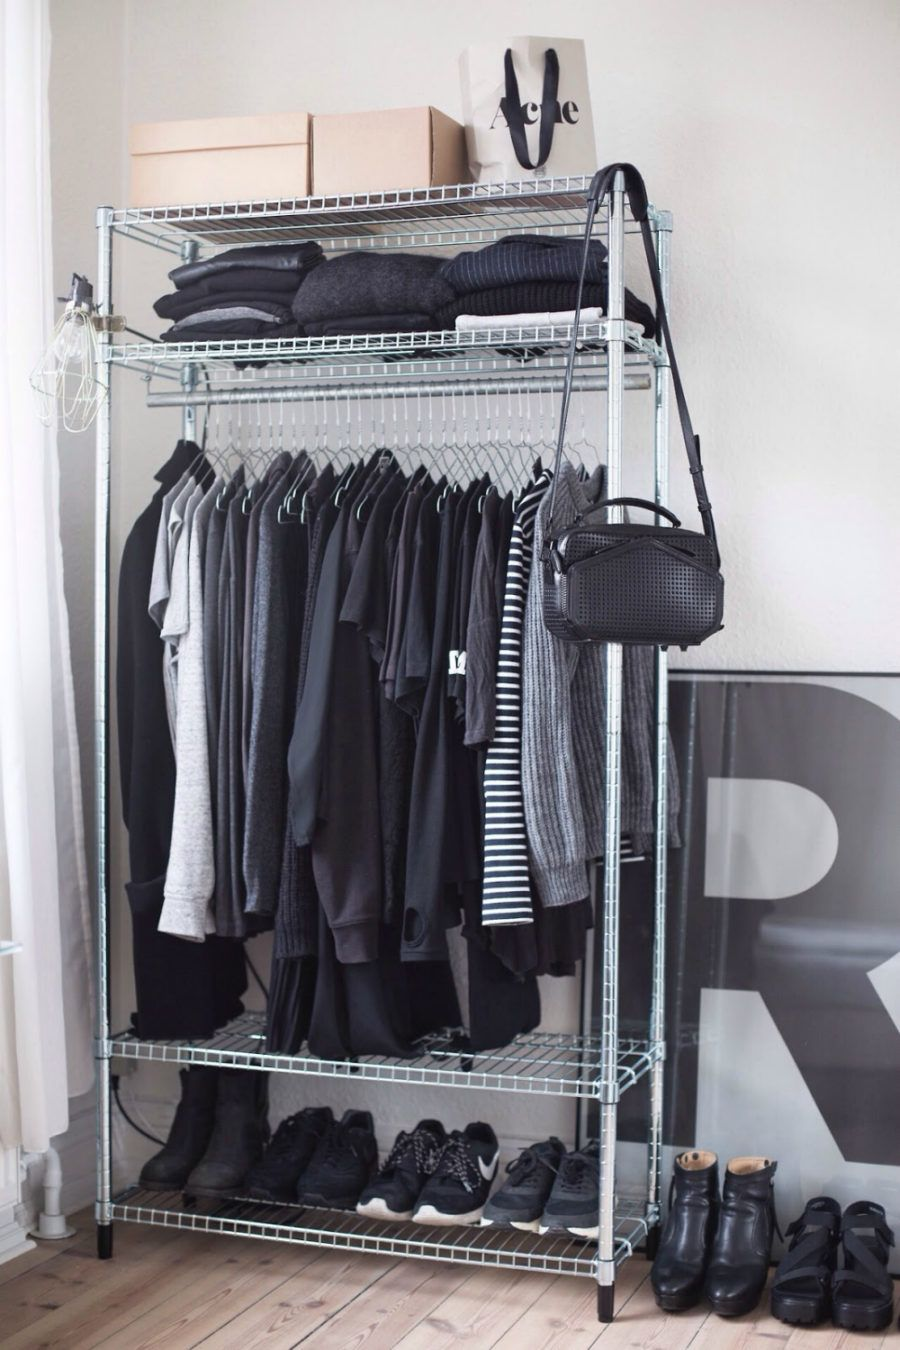 30 Chic And Modern Open Closet Ideas For Displaying Your Wardrobe Small Closet Space Open Closet Wardrobe Storage